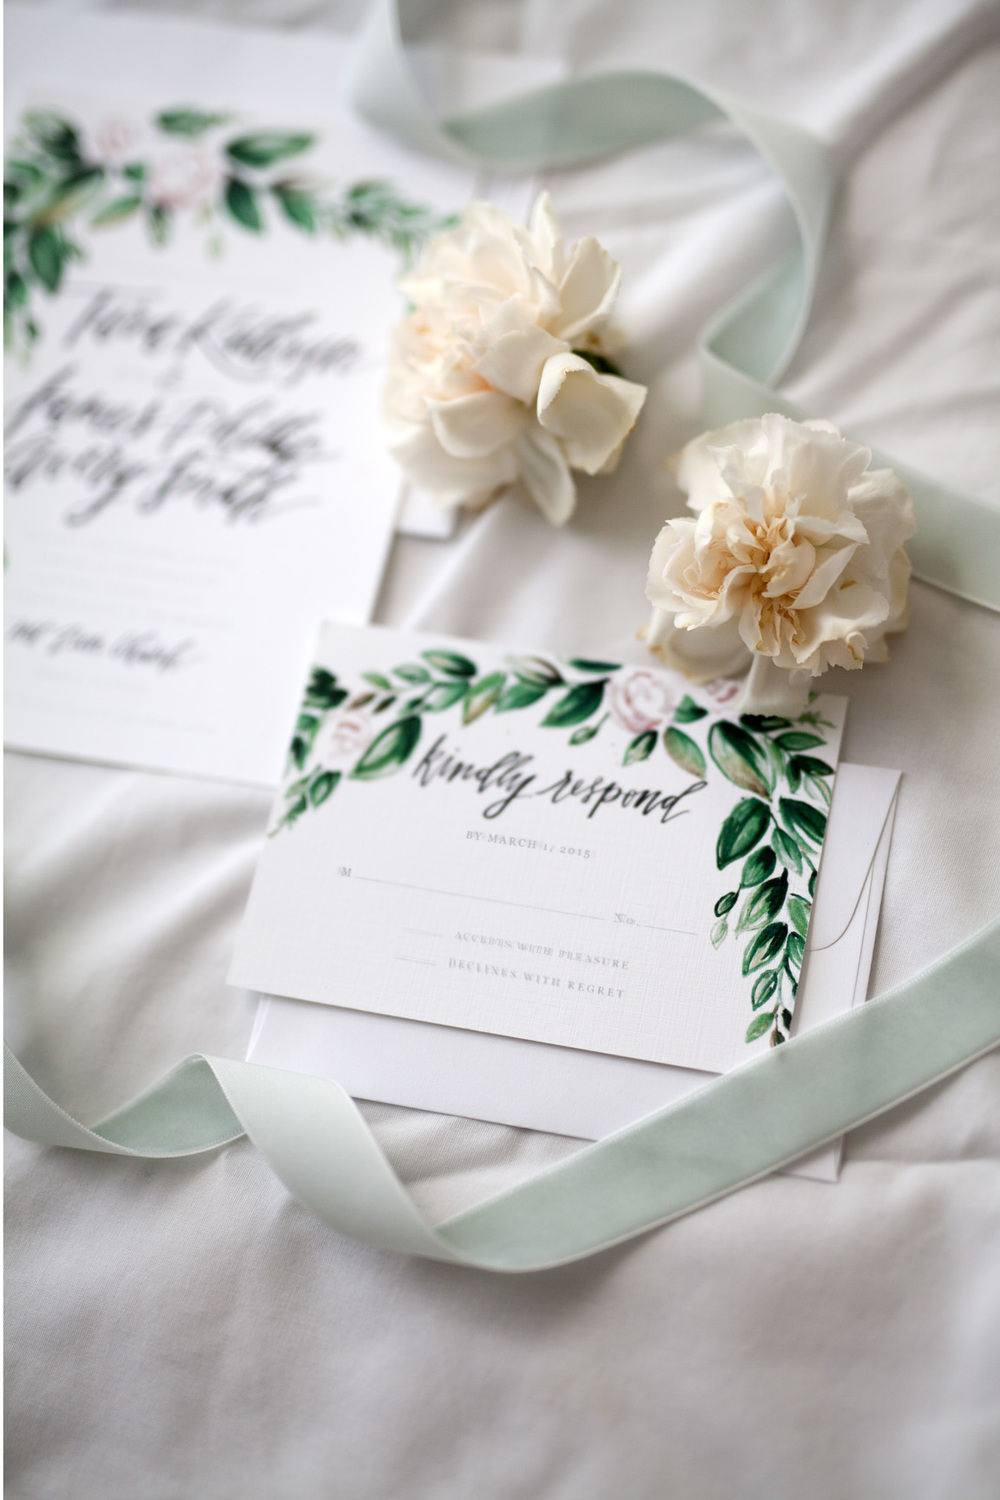 Tara + Phillip's Romantic Evergreen Custom Wedding Invitaion Suite